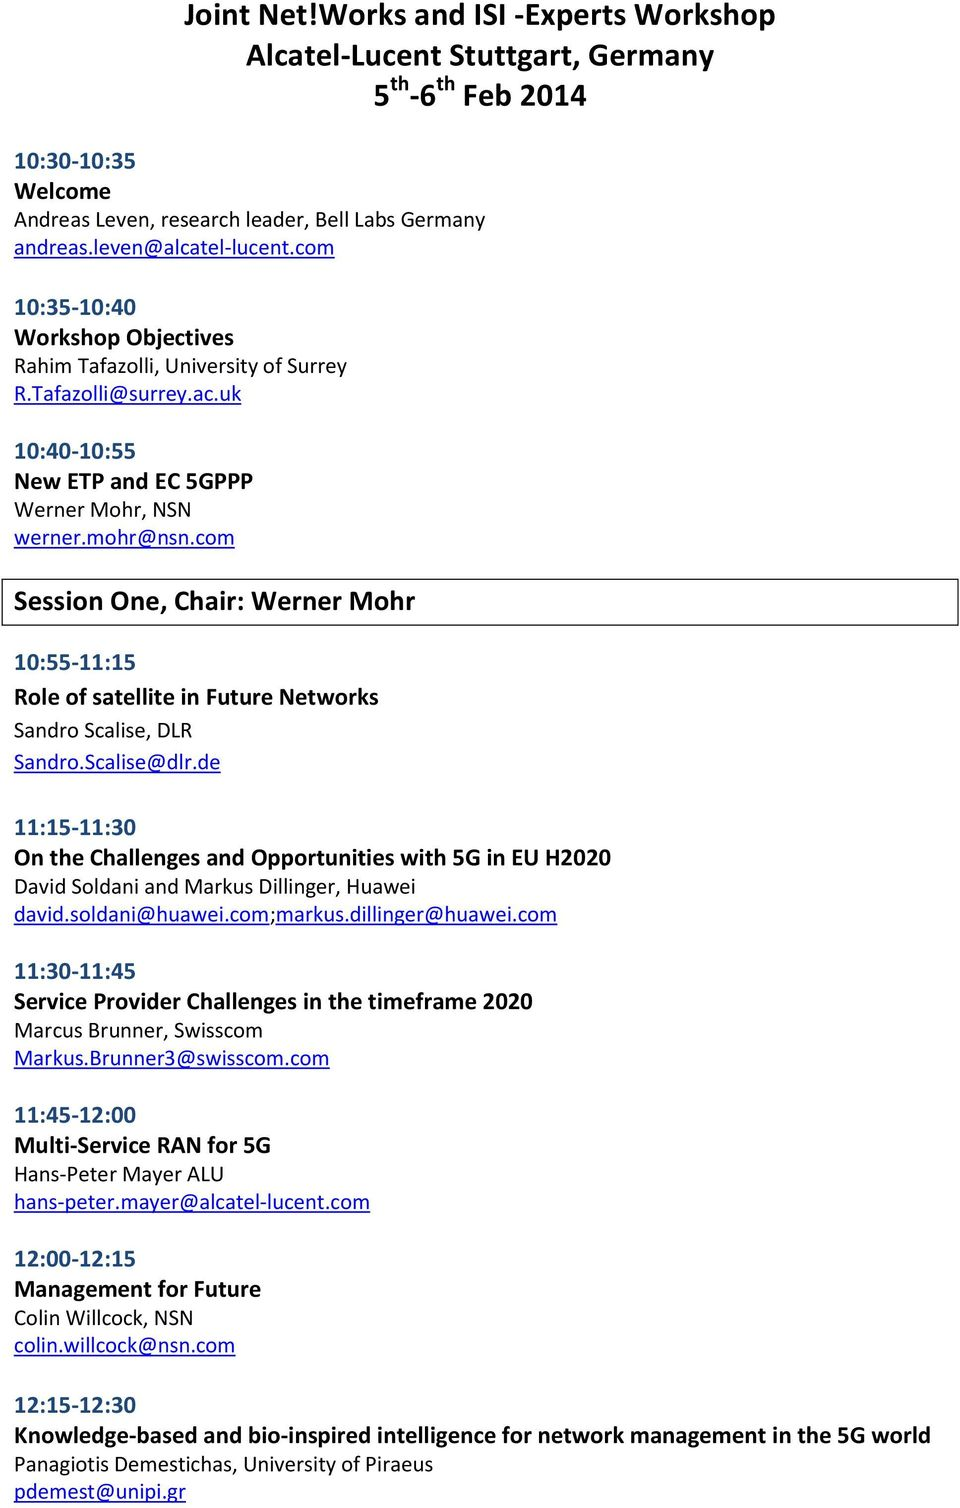 de 11:15-11:30 On the Challenges and Opportunities with 5G in EU H2020 David Soldani and Markus Dillinger, Huawei david.soldani@huawei.com;markus.dillinger@huawei.